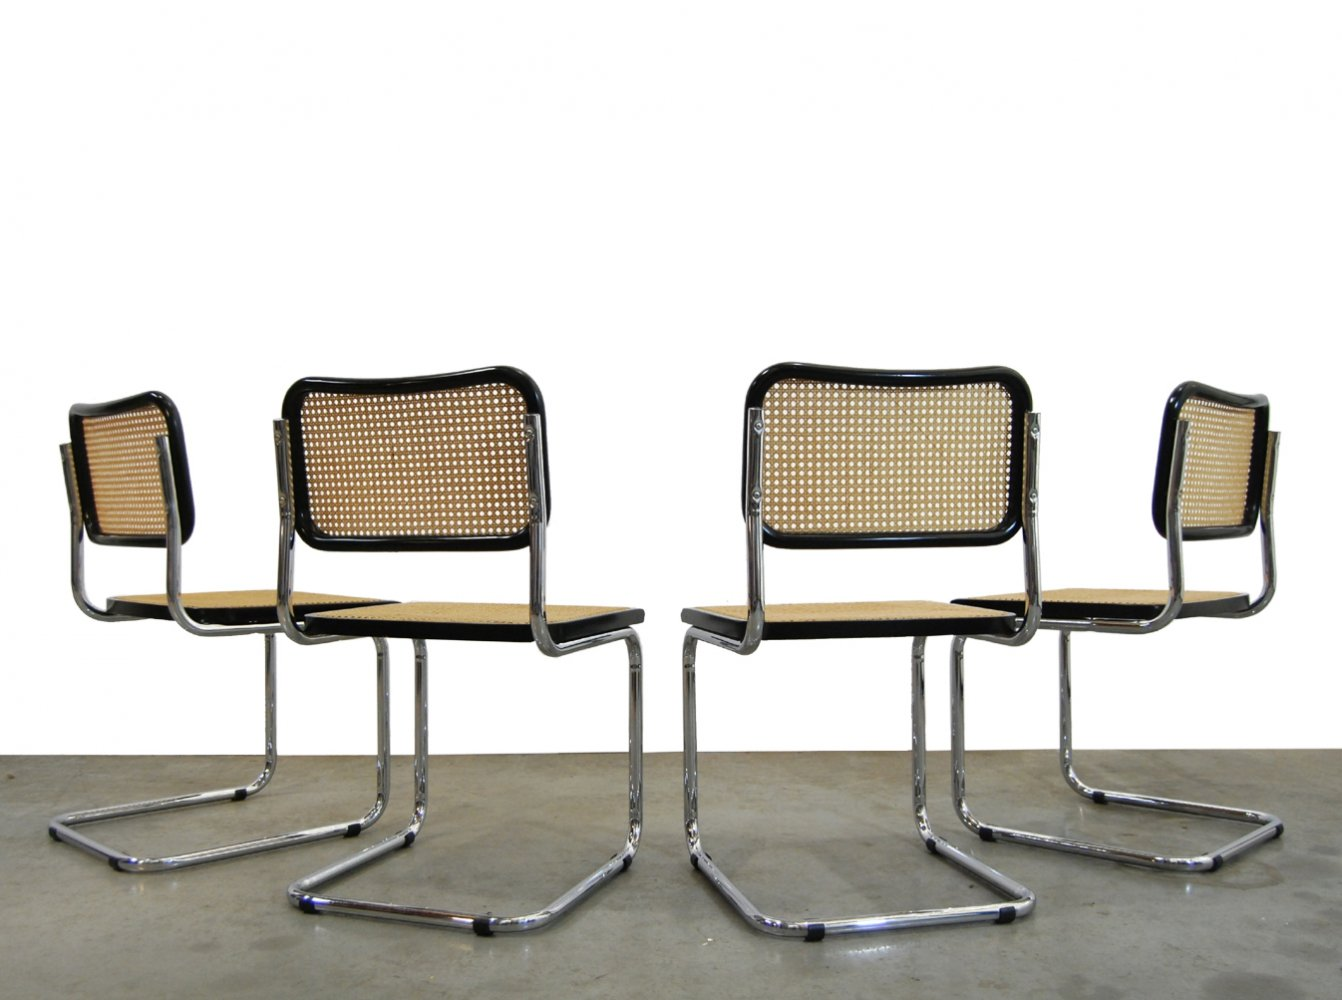 Vintage Cesca dining chairs by Marcel Breuer, Italy 1990s